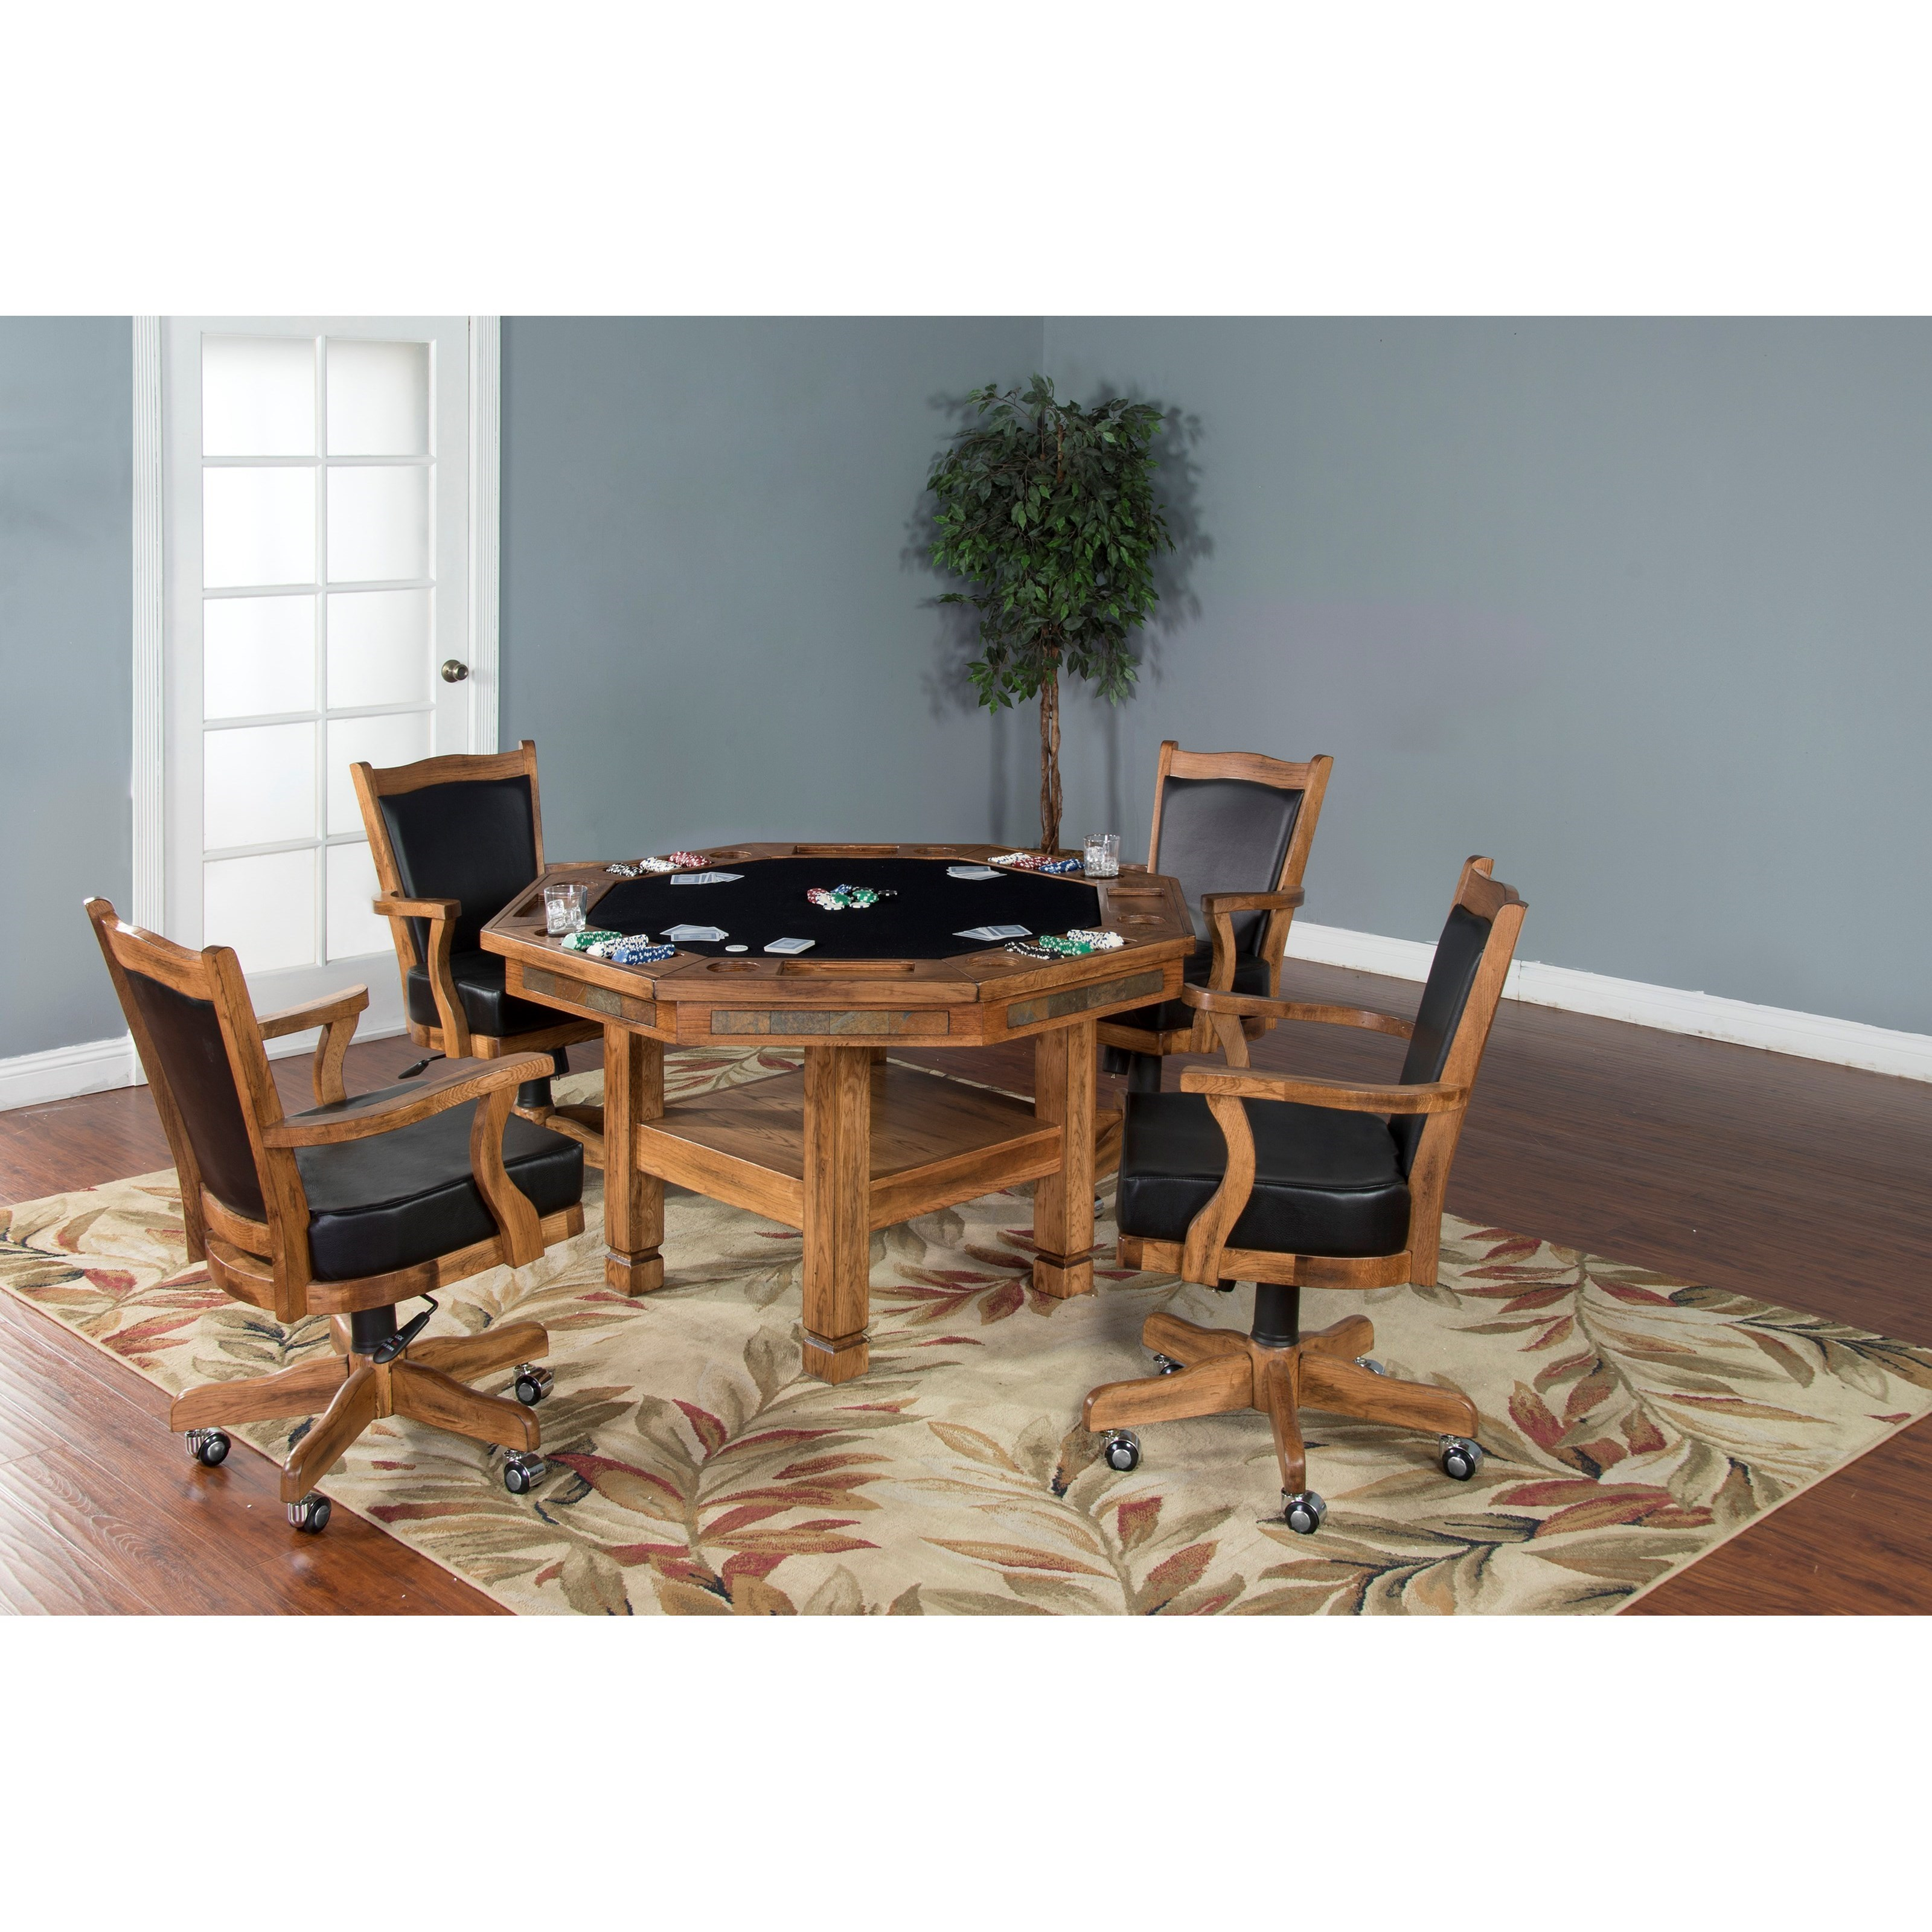 Sunny designs sedona reversible top game dining table for At home designs sedona leather chaise recliner